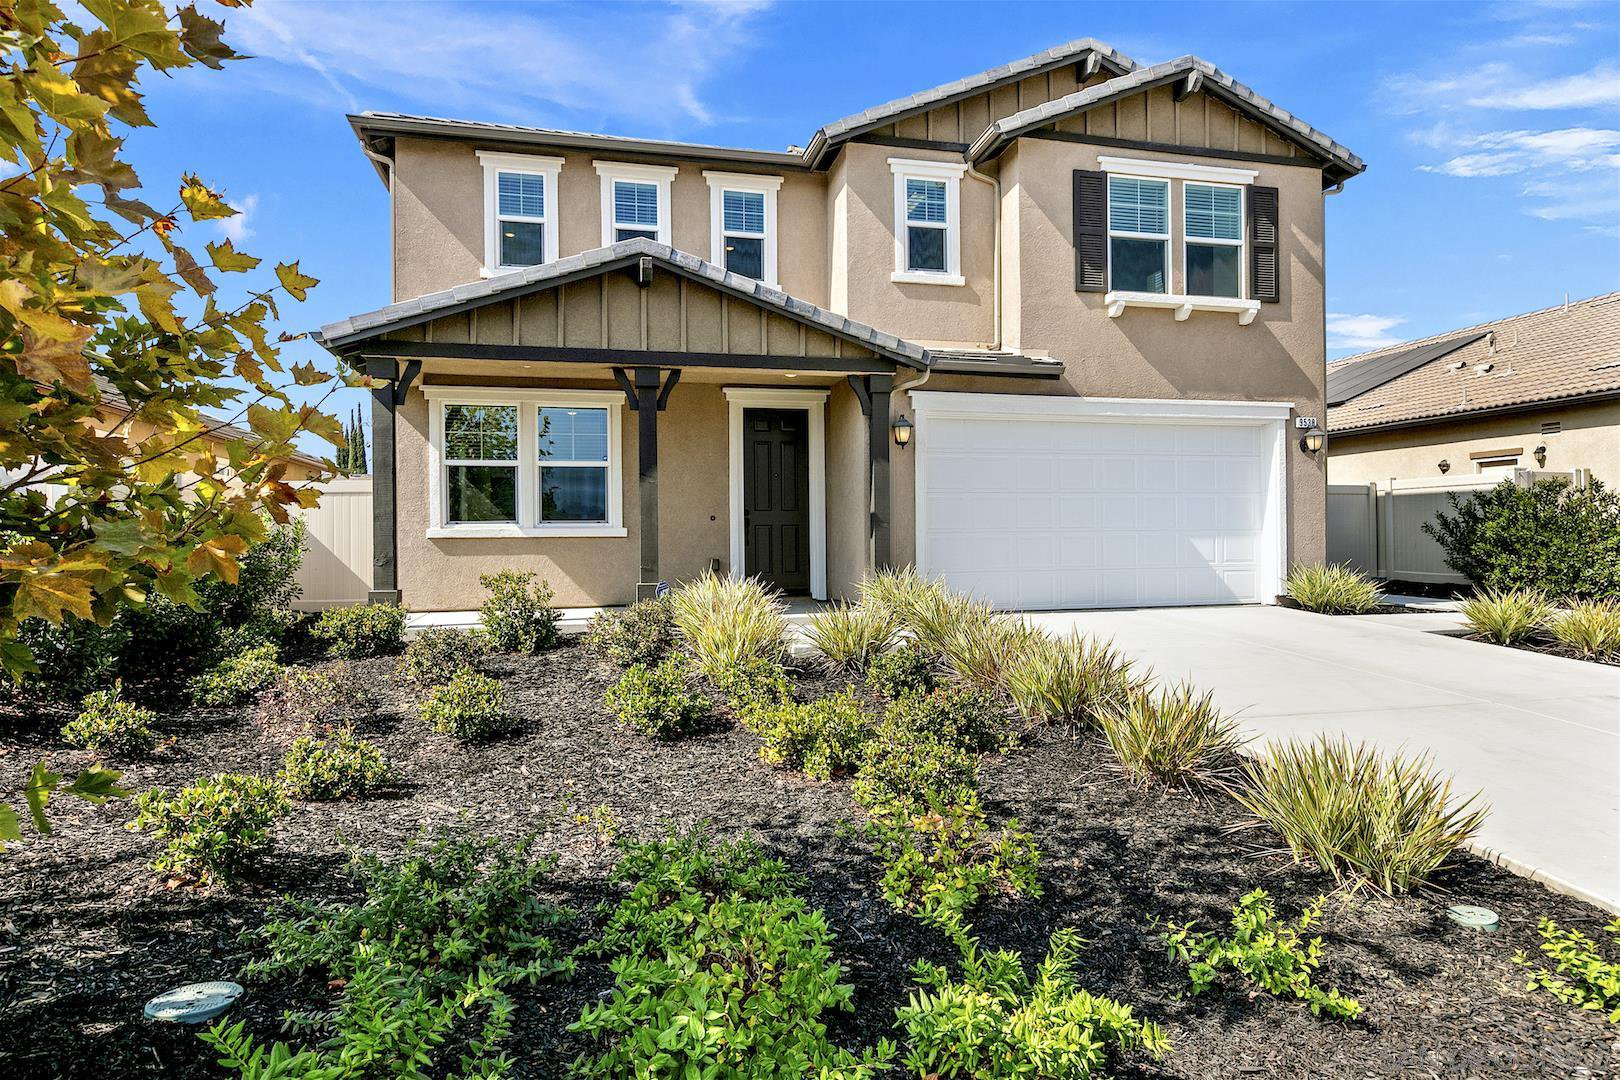 Main Photo: SANTEE House for sale : 4 bedrooms : 9538 Coolwater Way